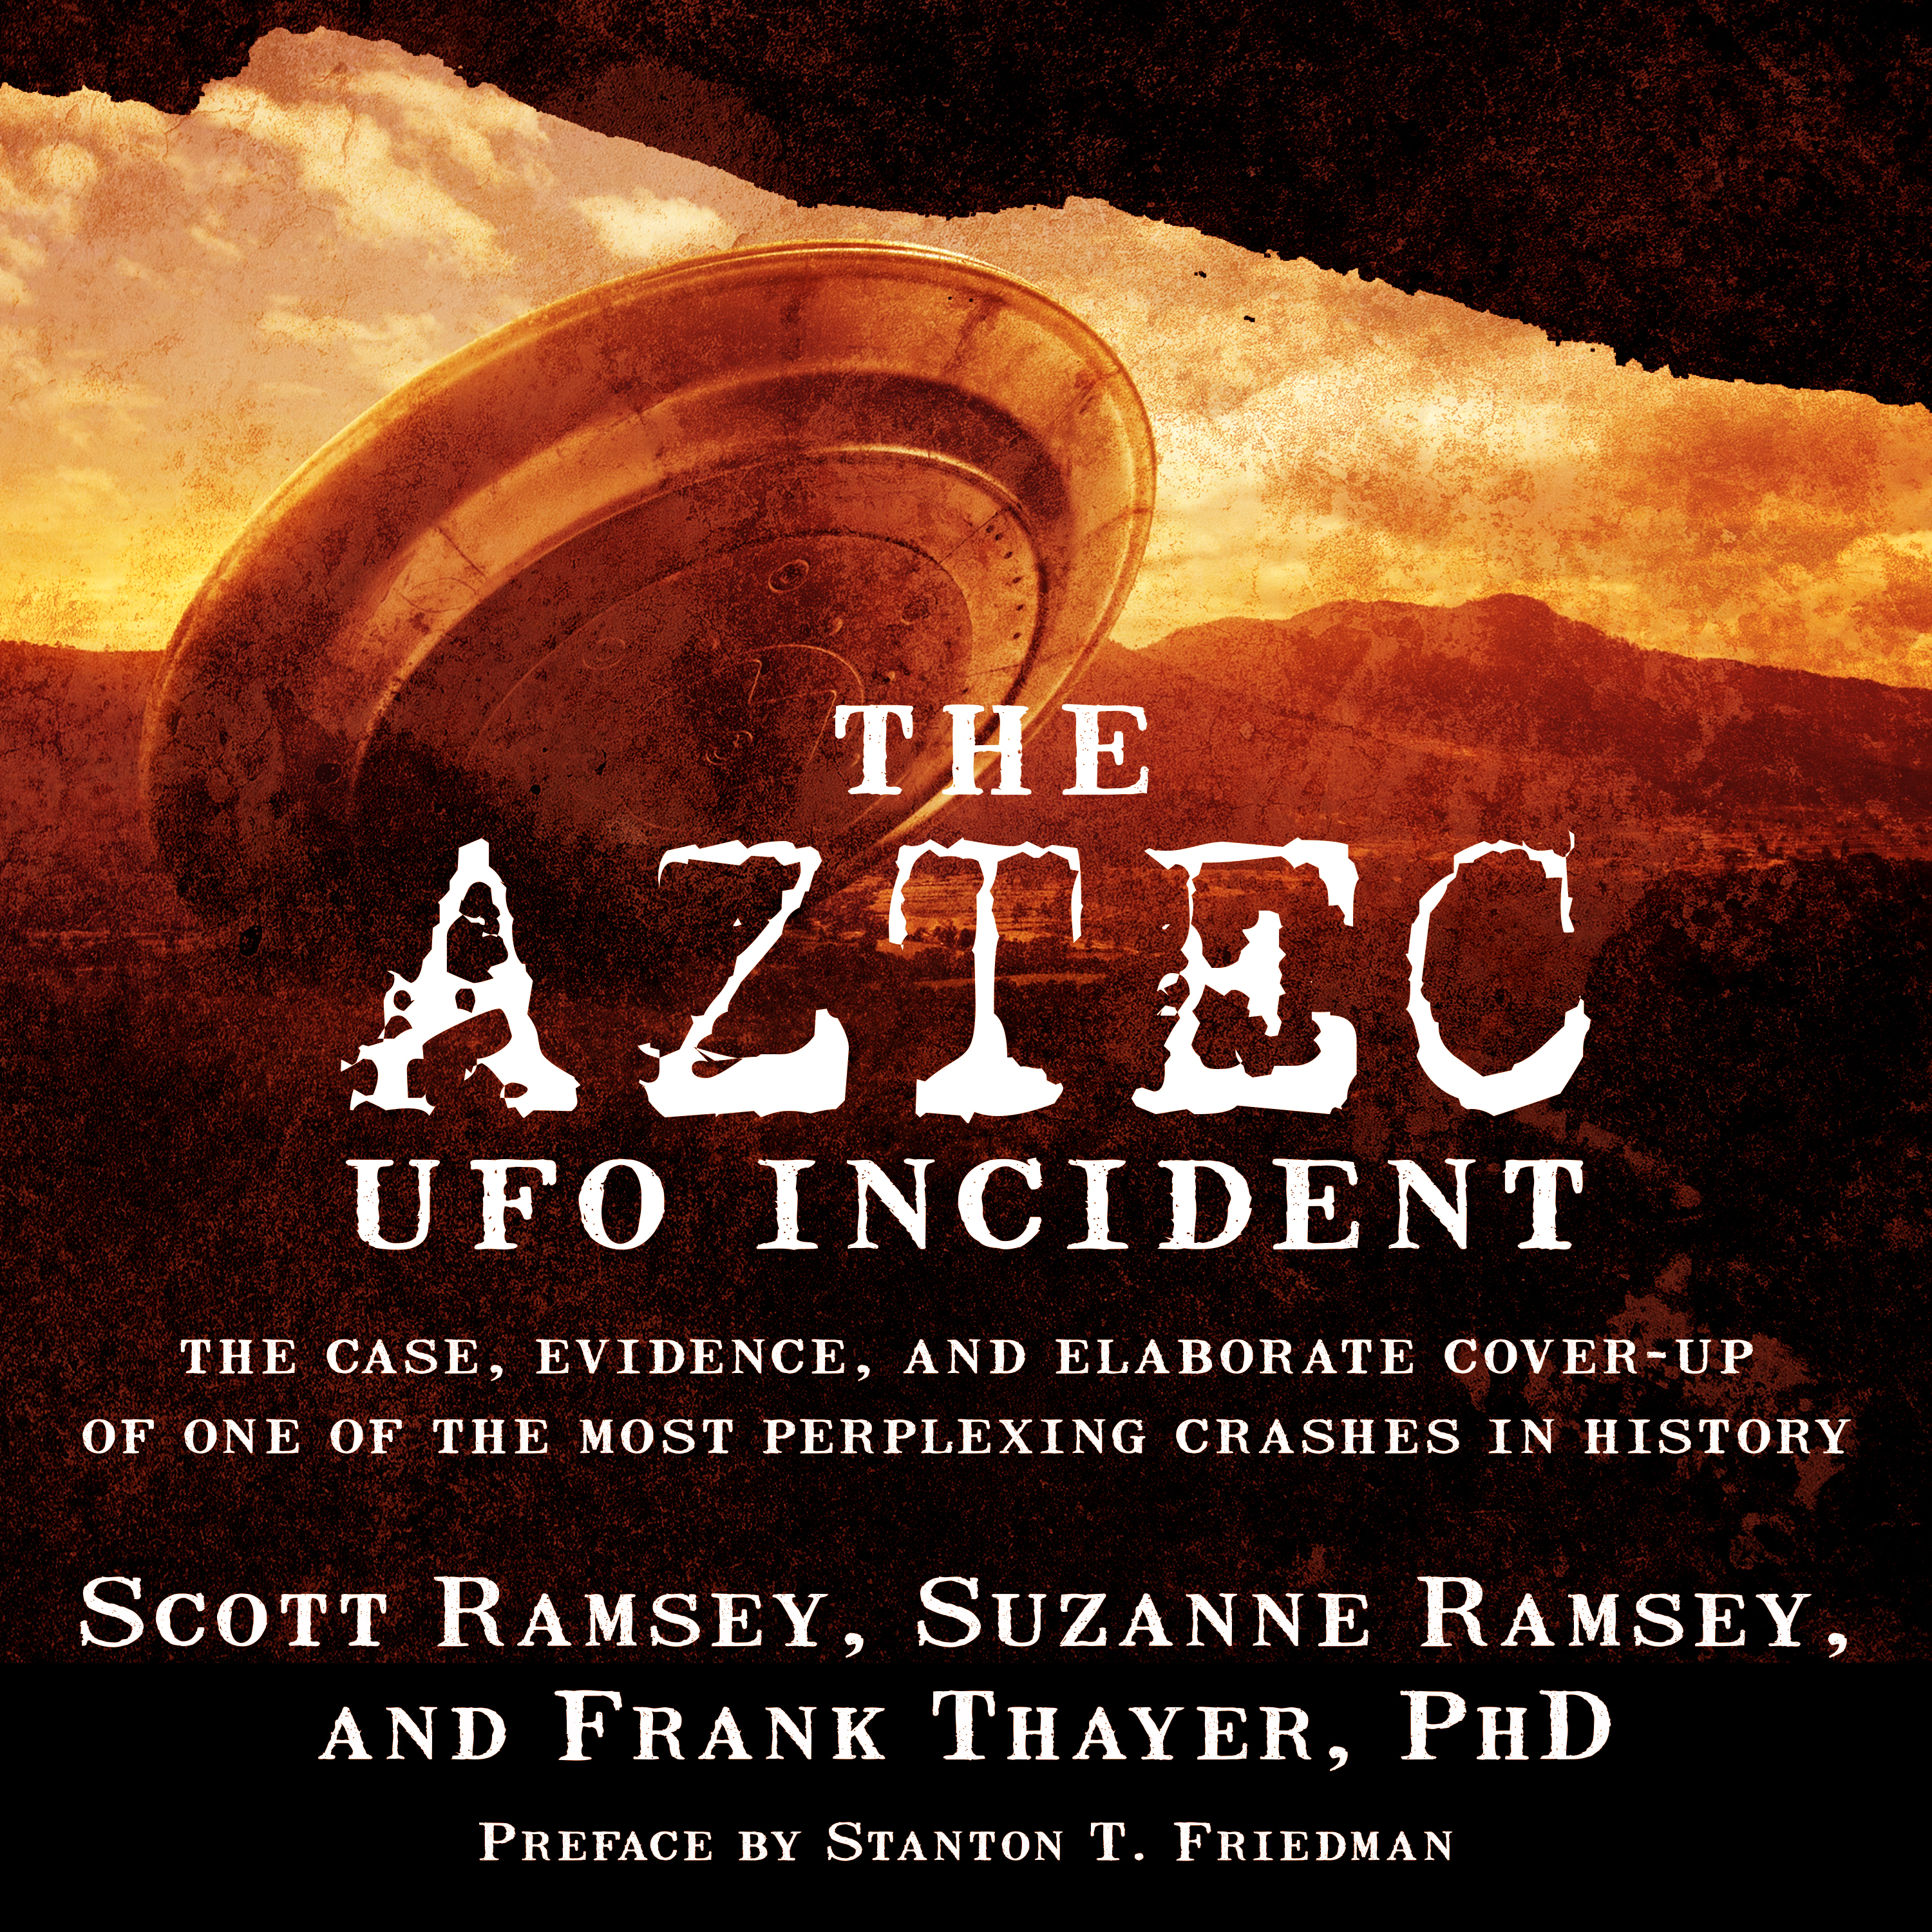 Printable The Aztec UFO Incident: The Case, Evidence, and Elaborate Cover-up of One of the Most Perplexing Crashes in History Audiobook Cover Art